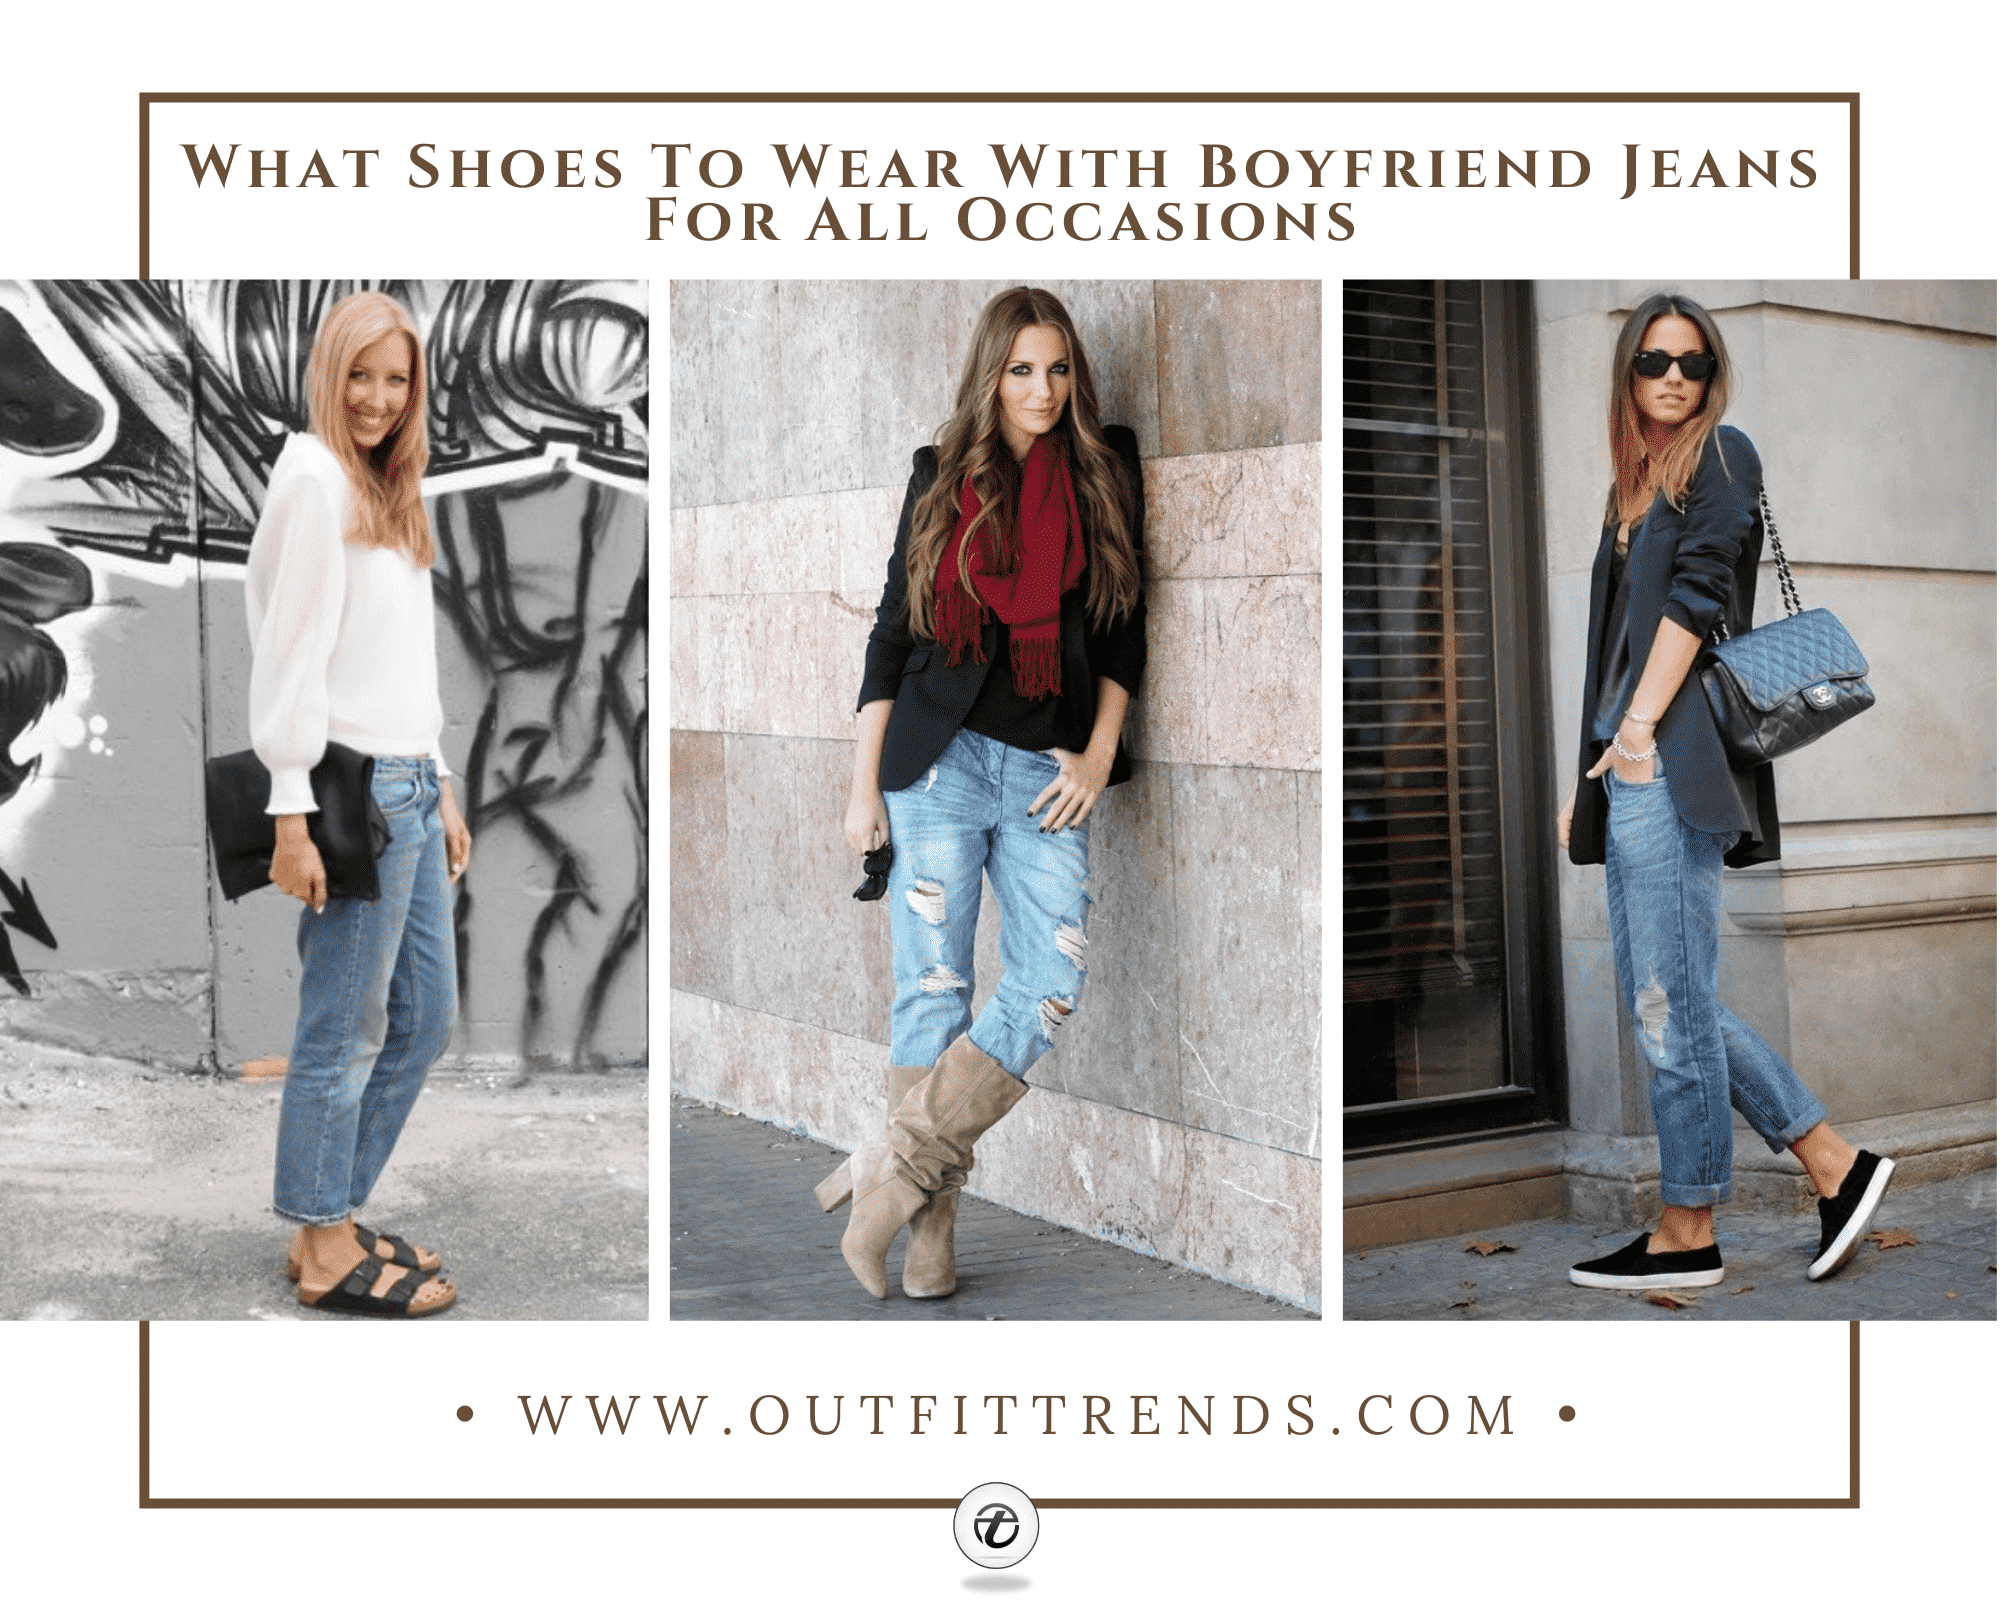 30 Best Shoes to Wear With Boyfriend Jeans For a Chic Look